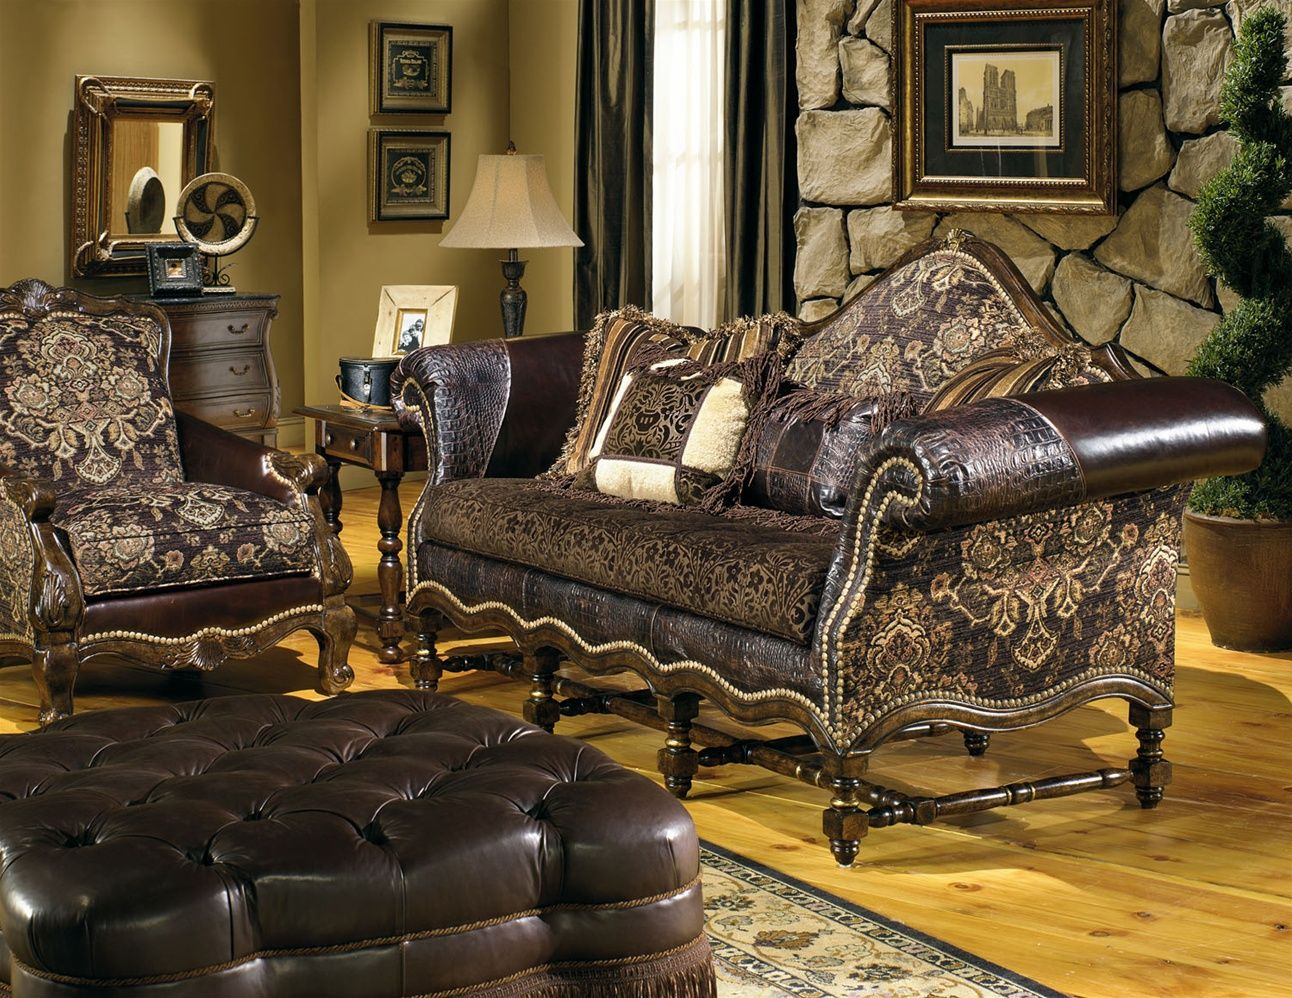 Miraculous In Style Home Furnishings House Design Ideas Largest Home Design Picture Inspirations Pitcheantrous